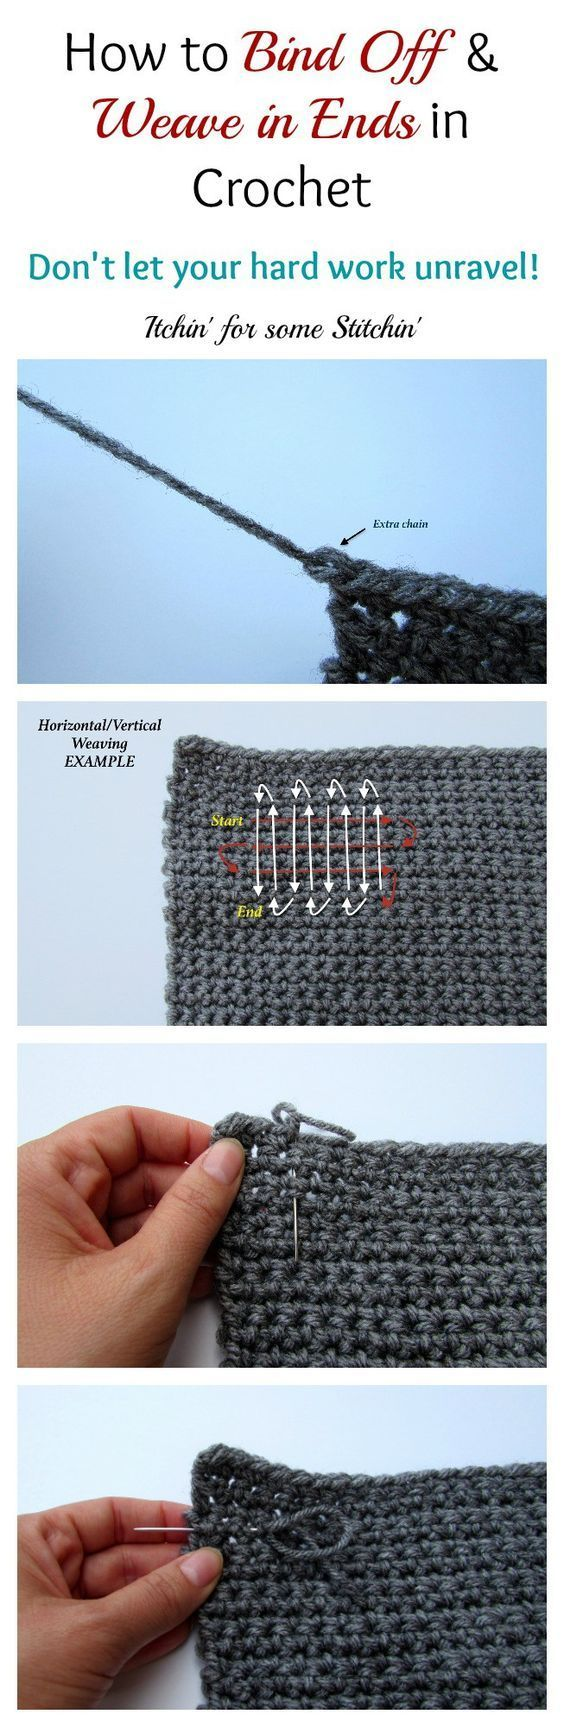 How to Bind Off and Weave in Ends in CrochetNice little tutorial over at Itchin for Some Stitchin. A good one to have in your crochet arsenal.